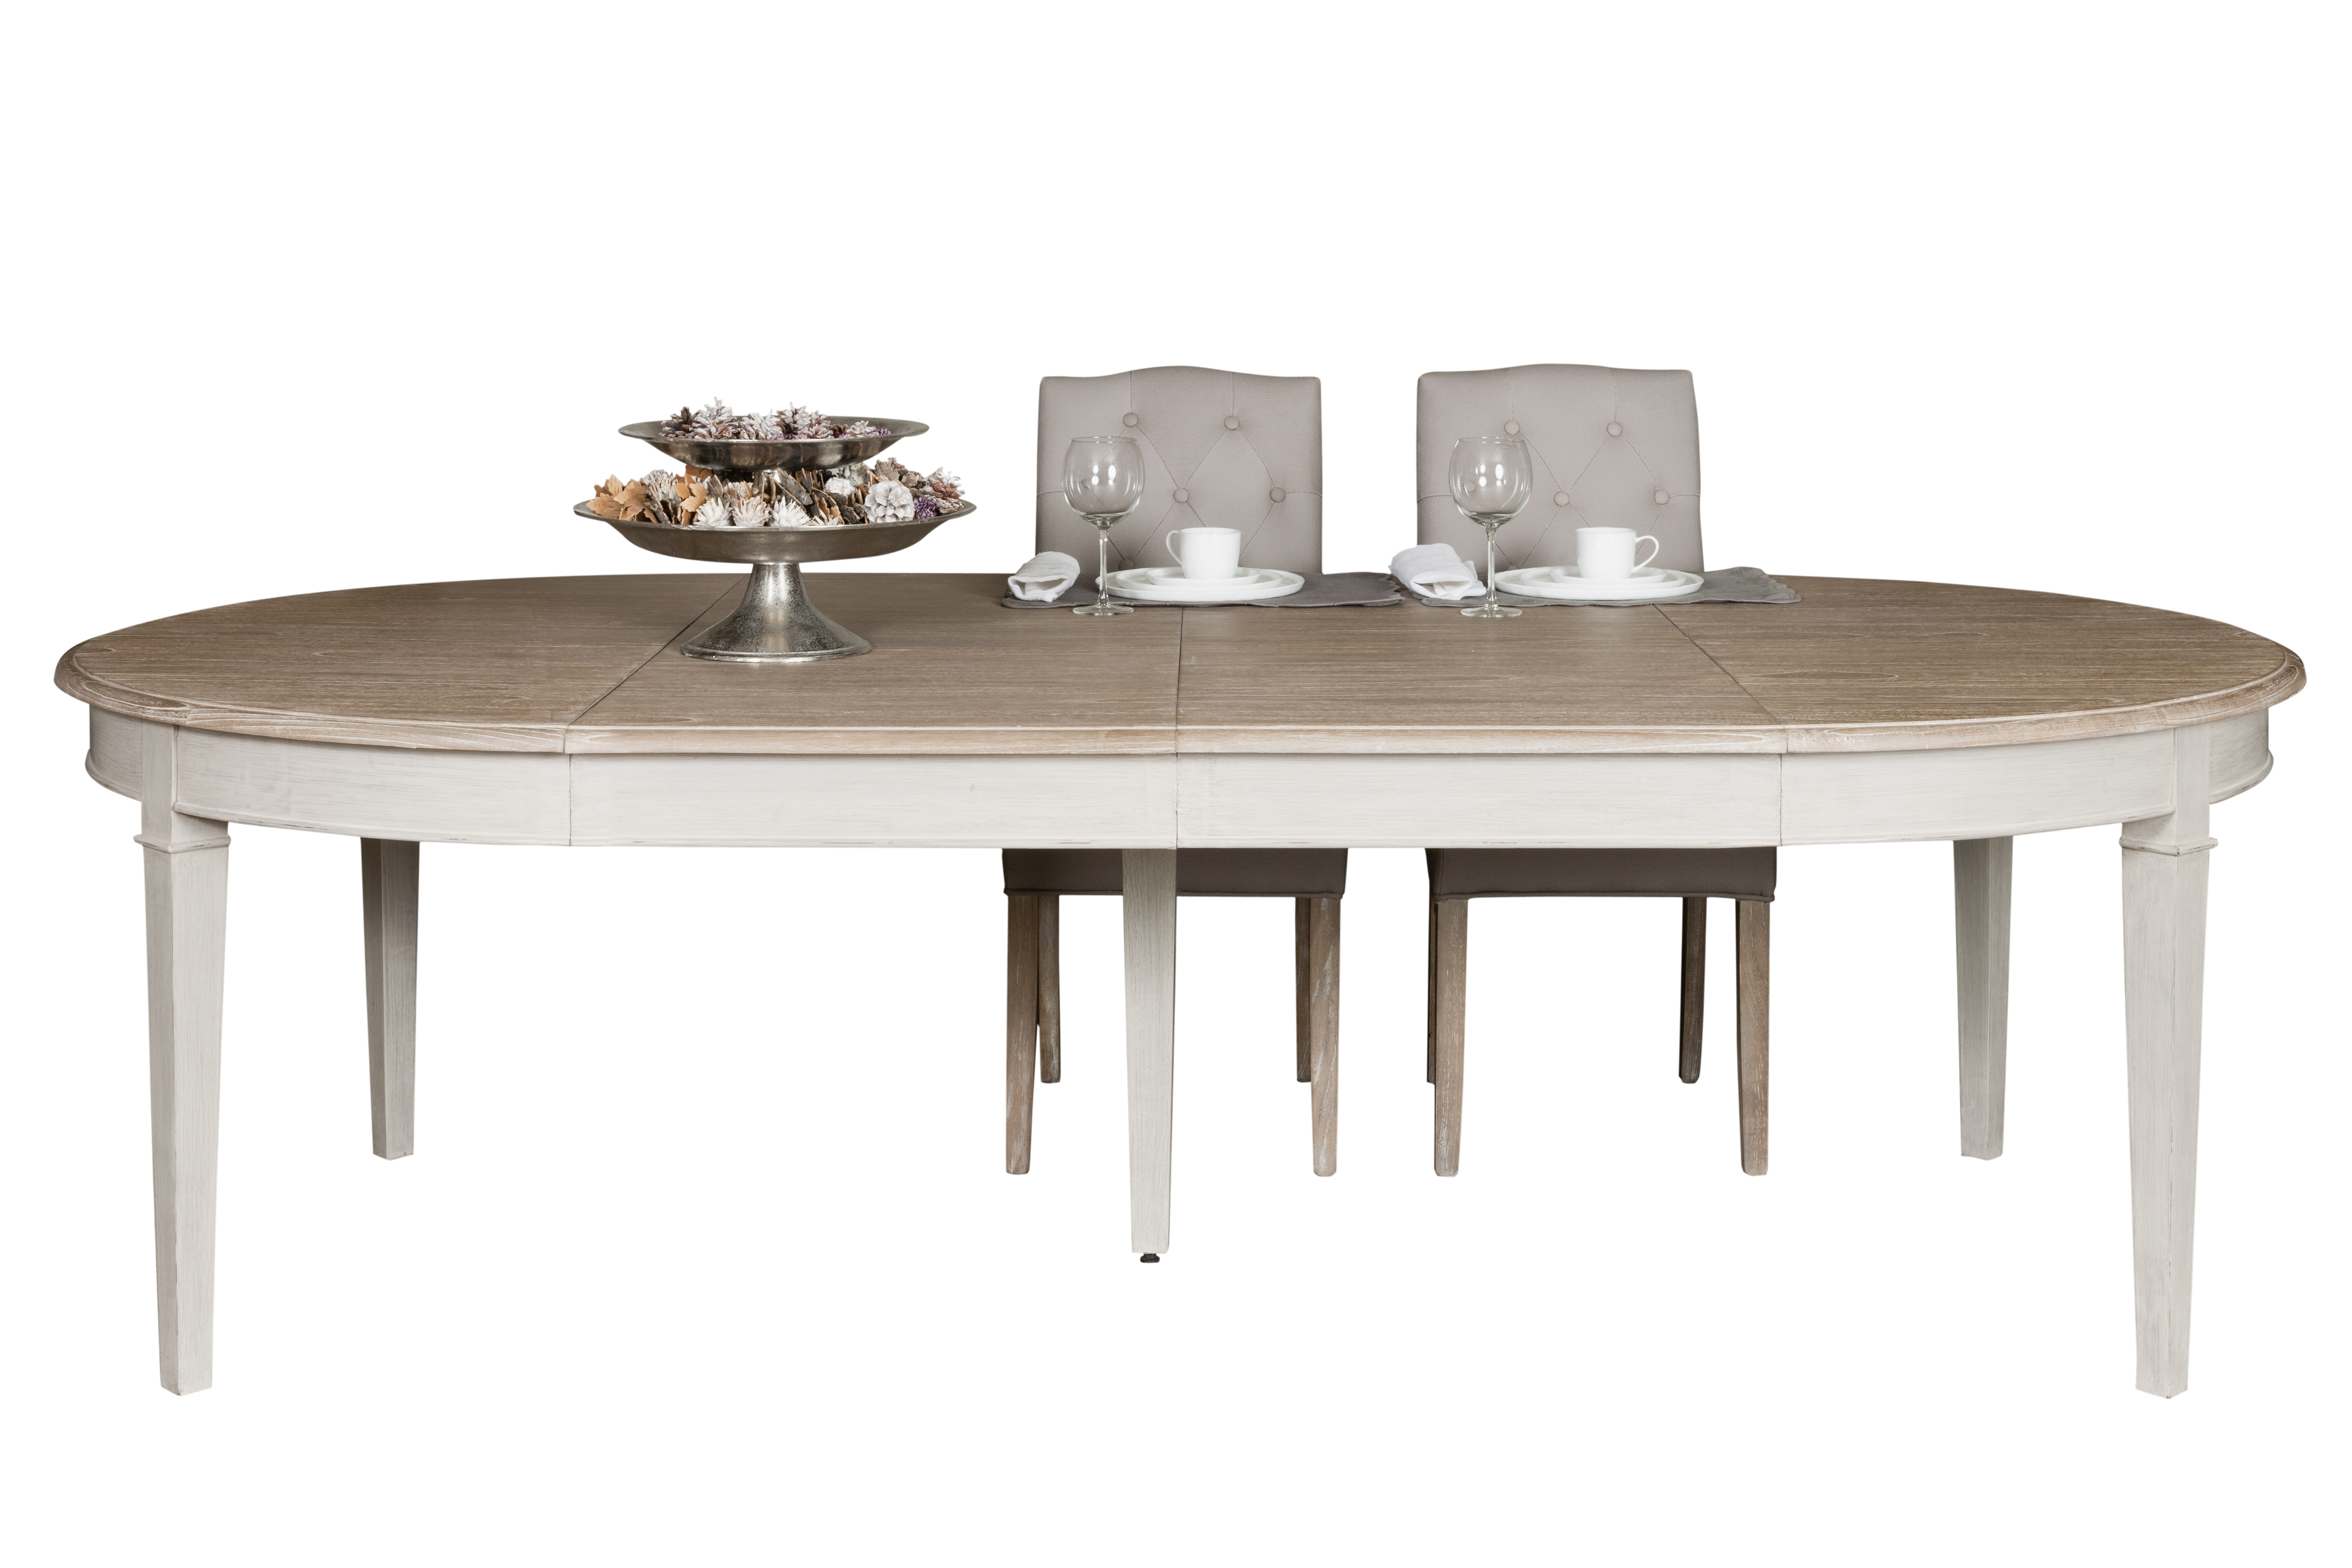 Eettafel uittrekbaar loungeset 2017 for Table a manger ronde extensible